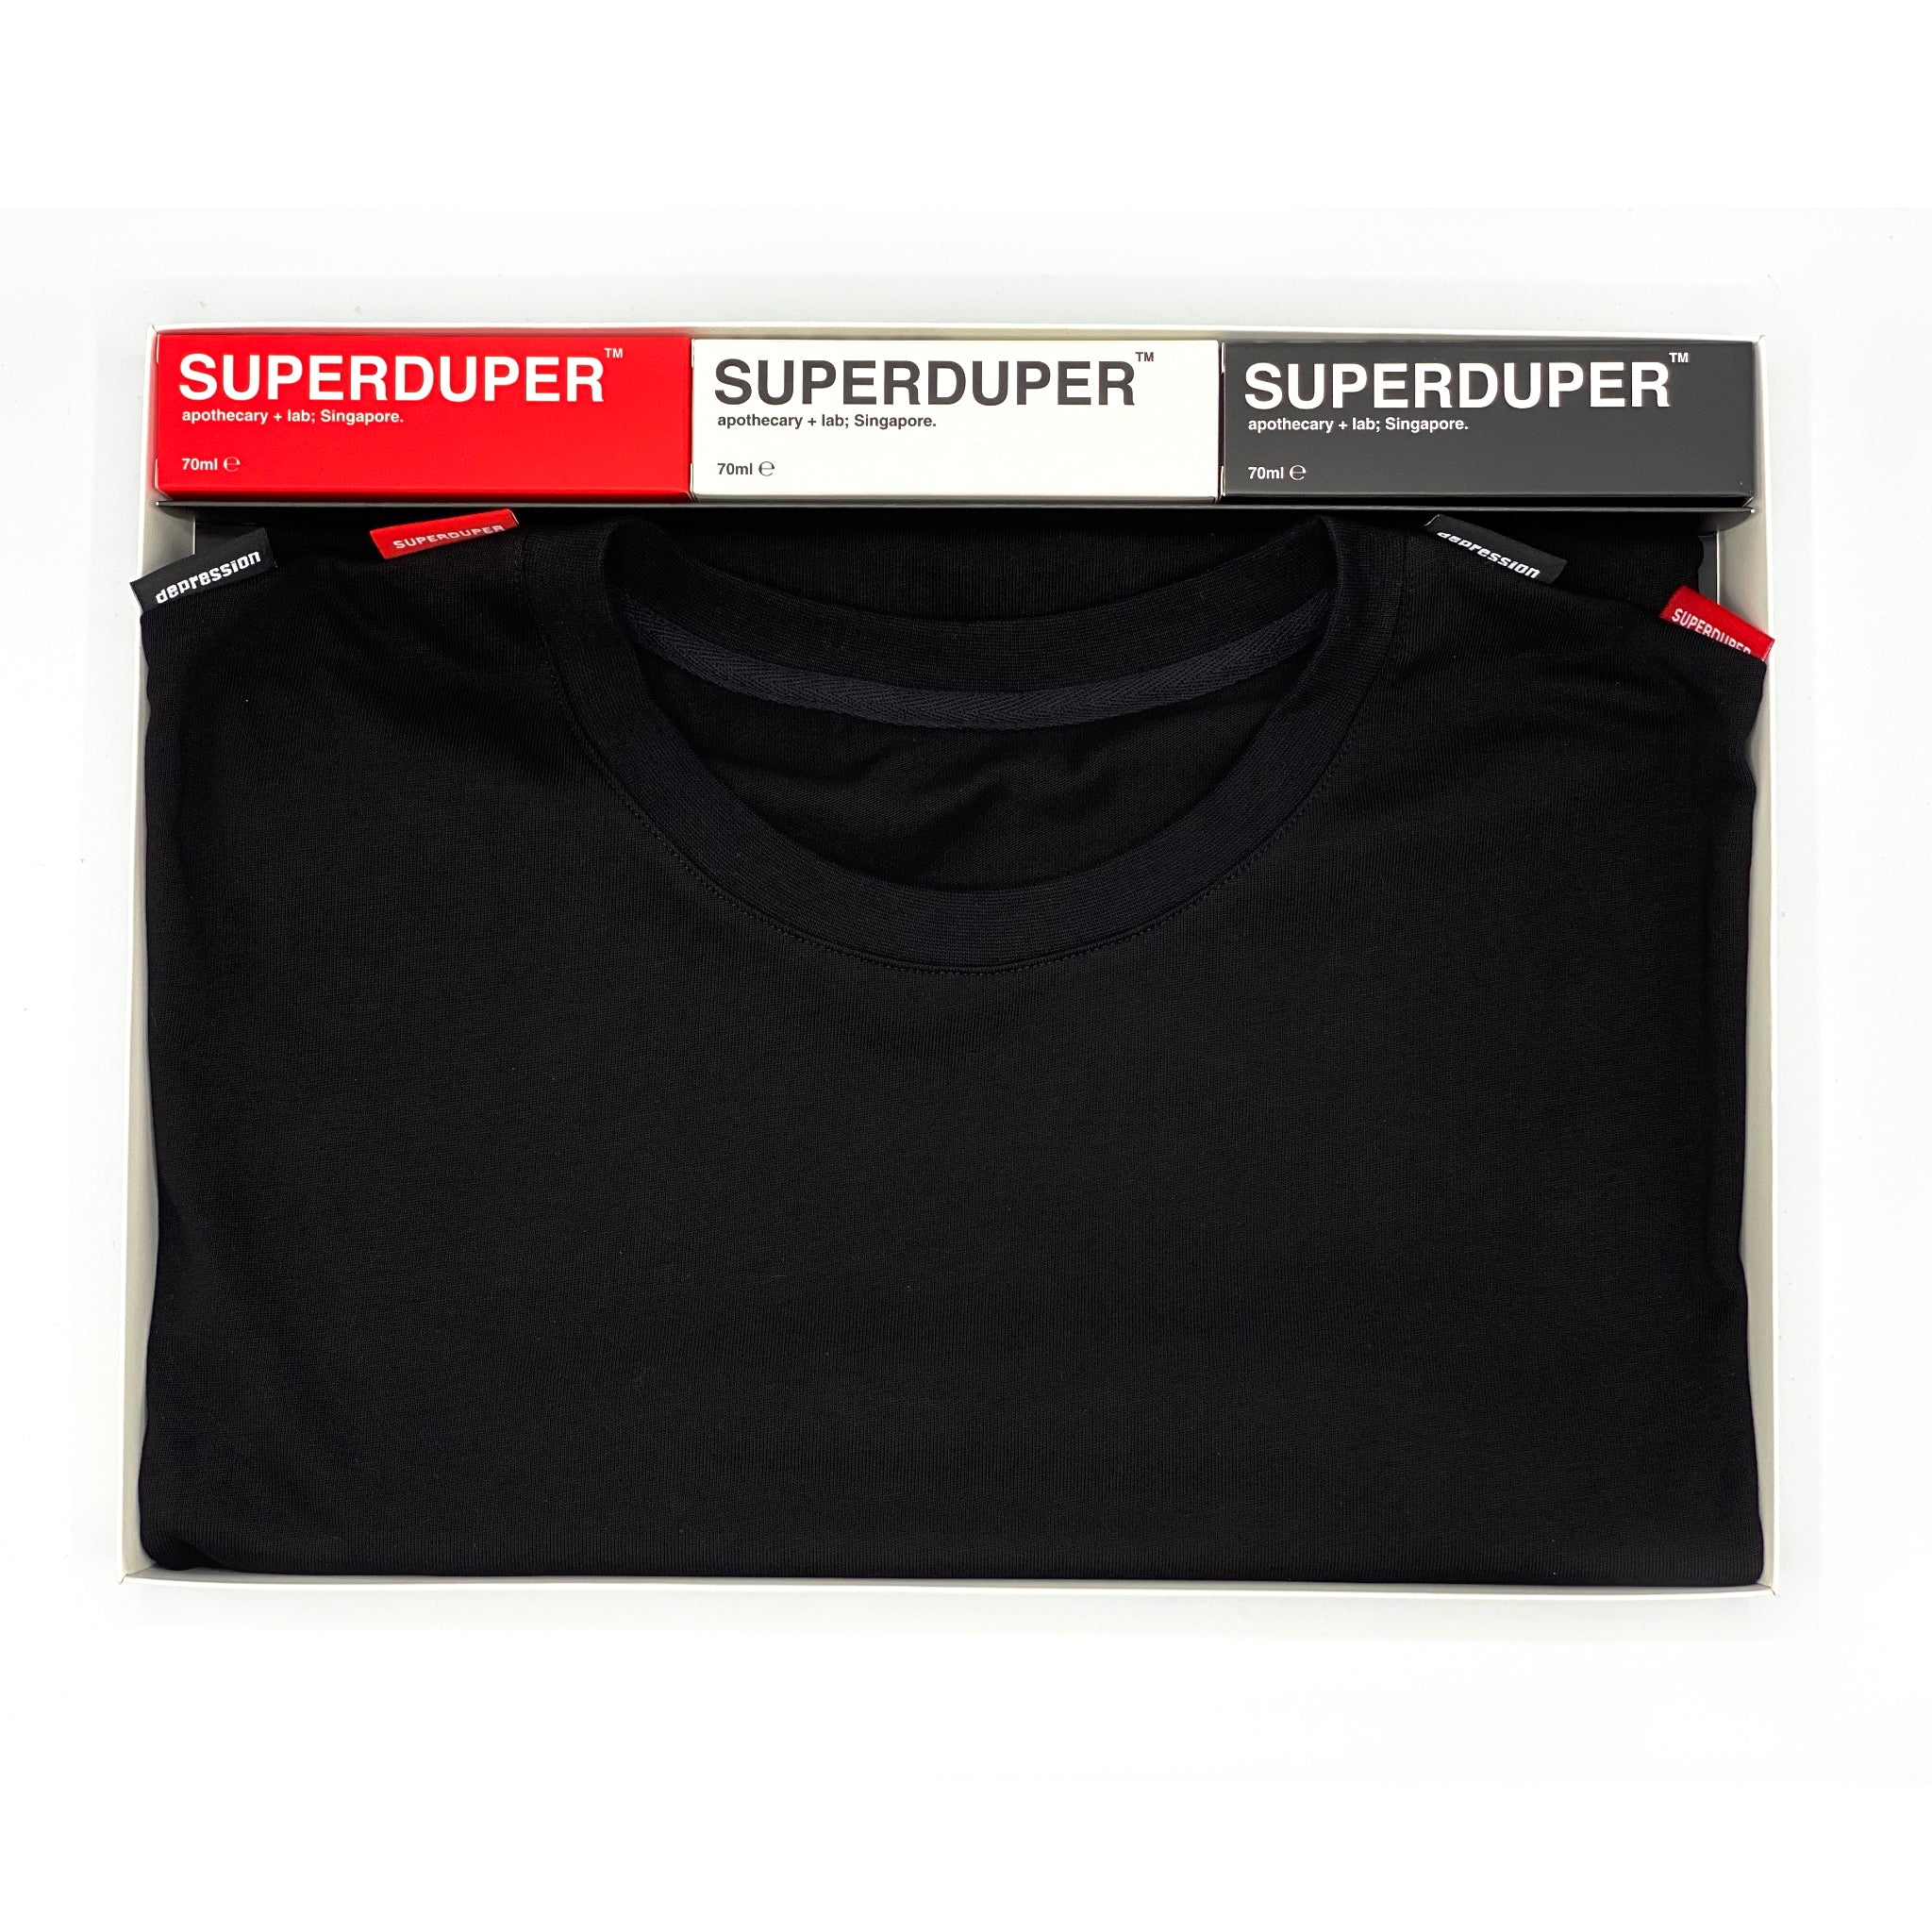 SUPERDUPER x DEPRESSION Box Set